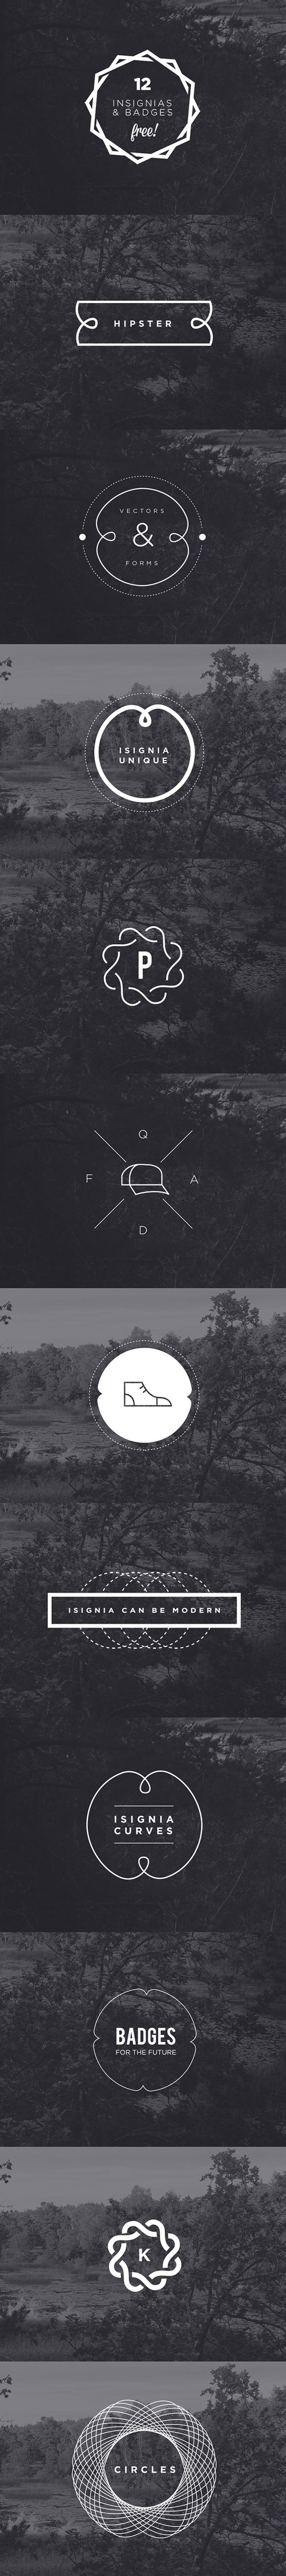 FREE HIPSTER INSIGNIAS & BADGES VECTOR & PSD on Behance